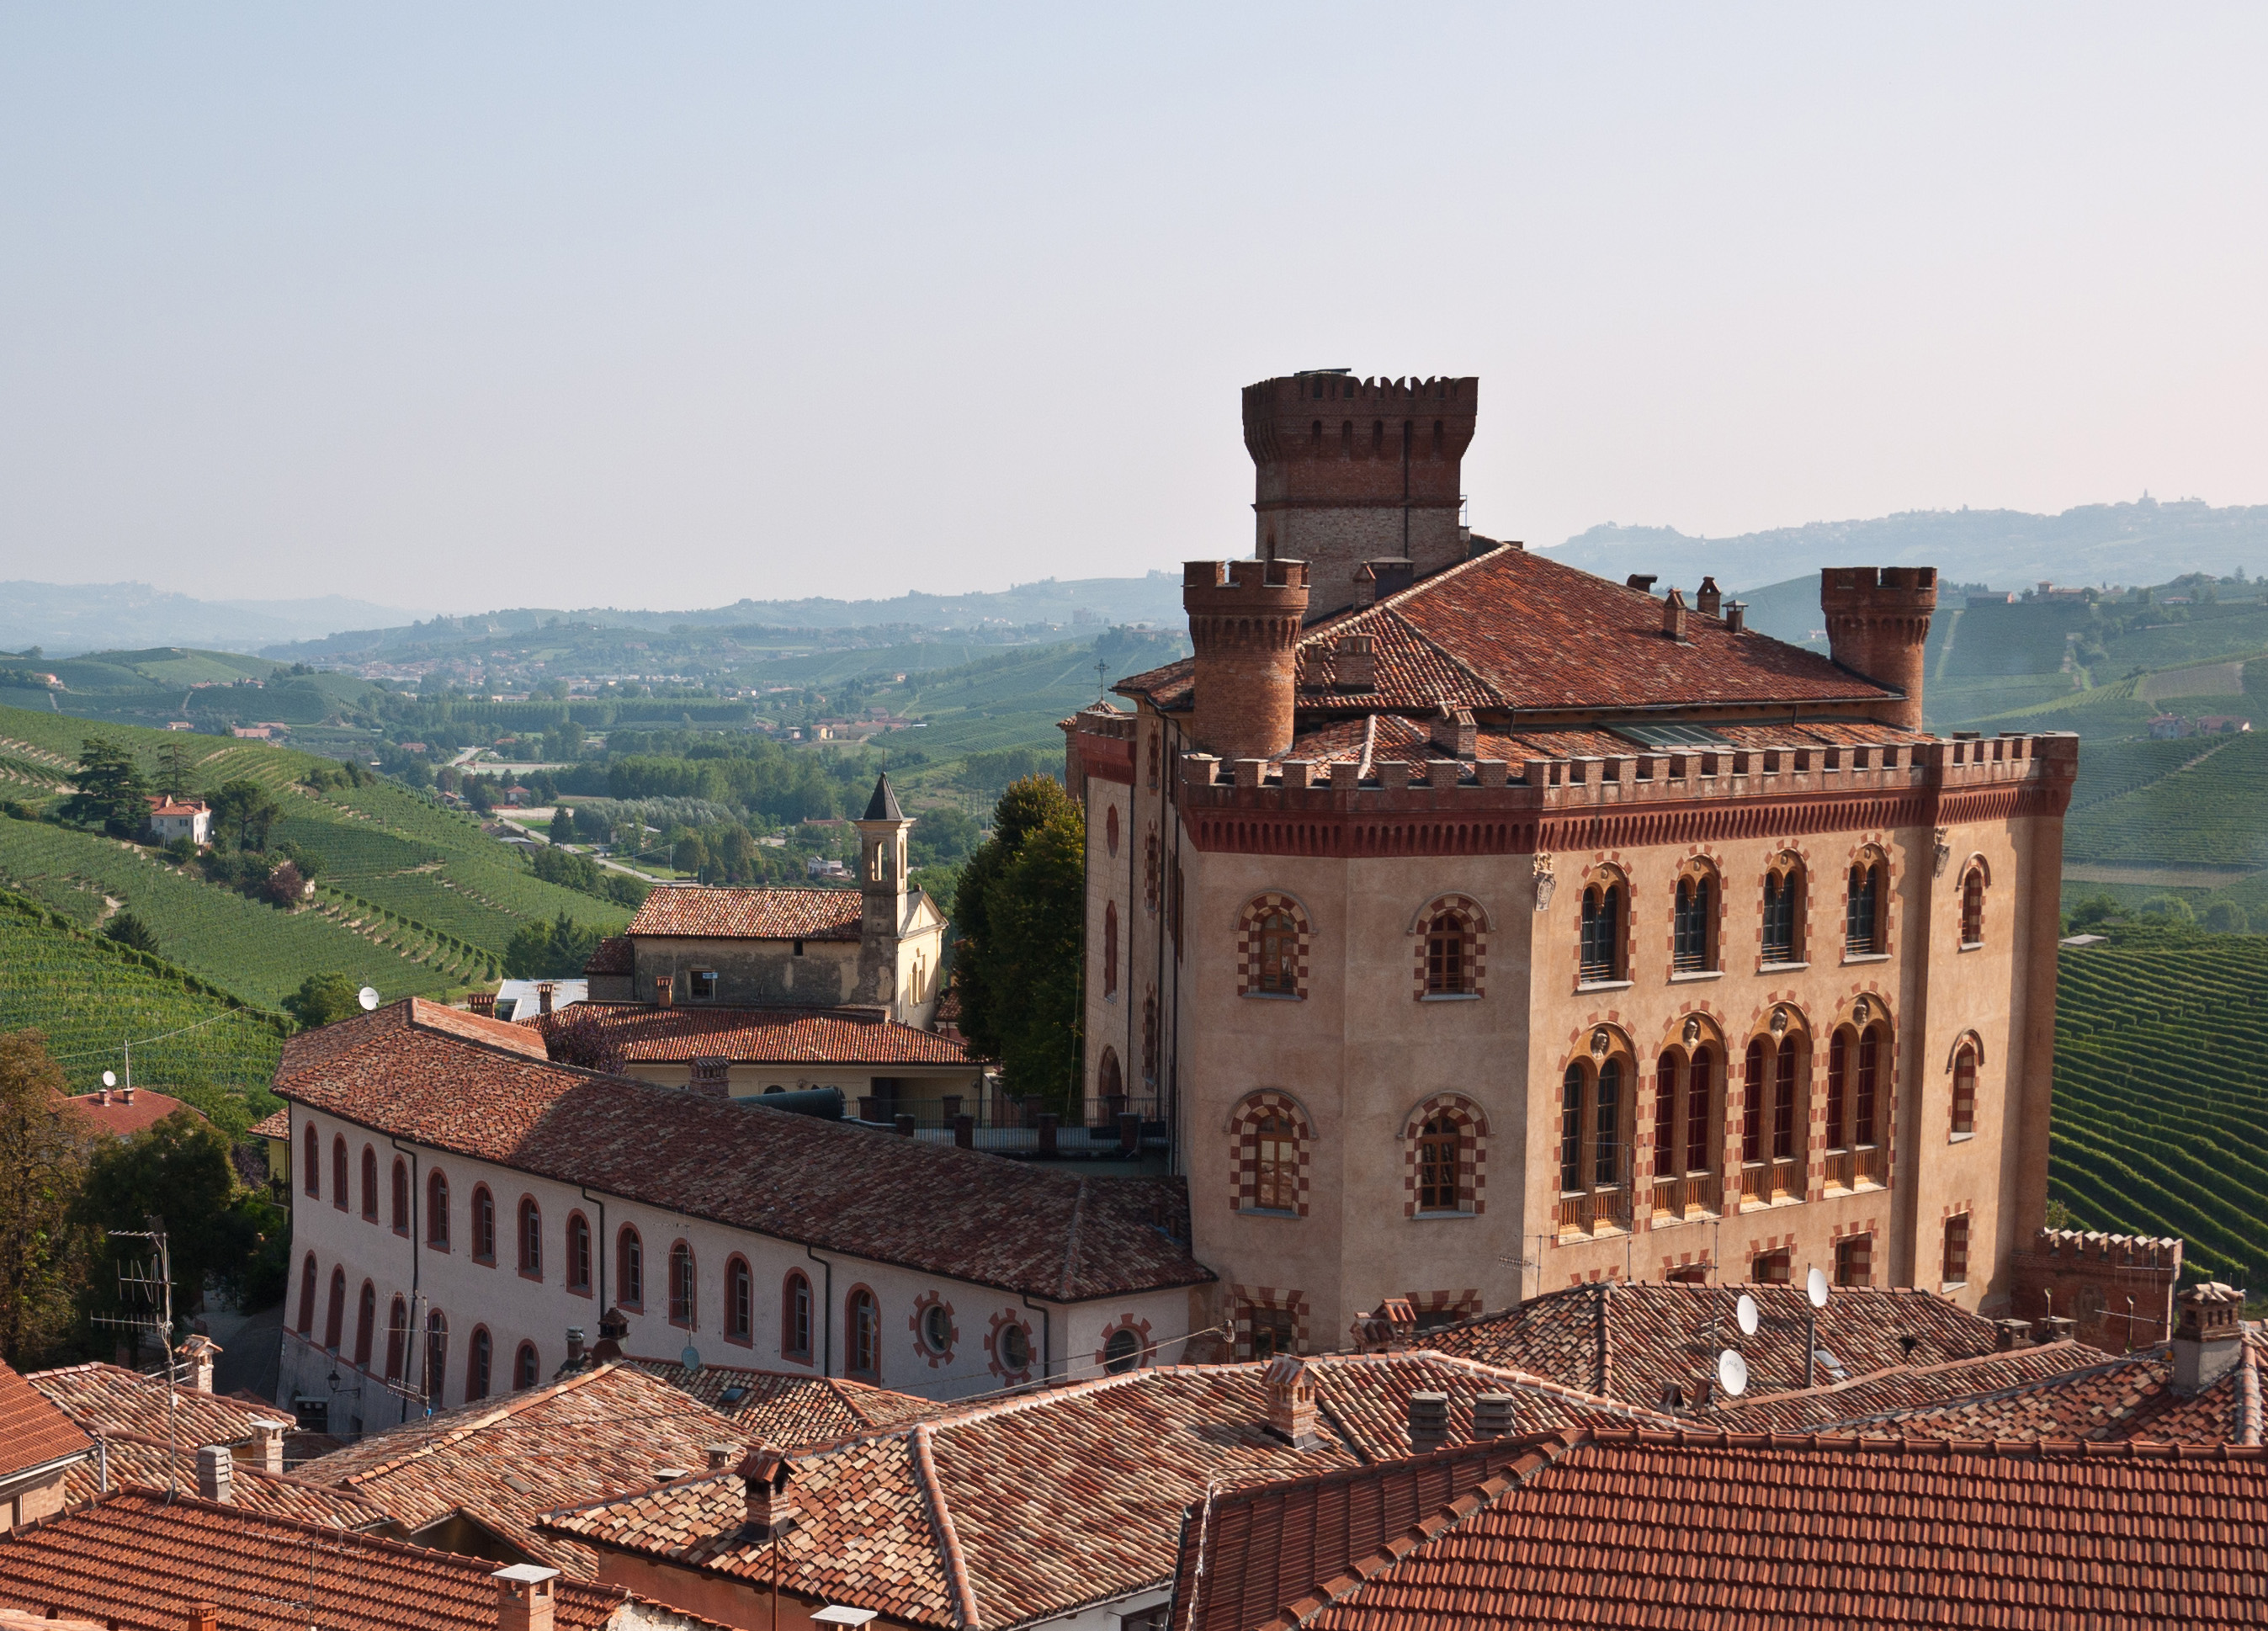 View of the castle in Barolo from the roof deck of the apartment we rented.